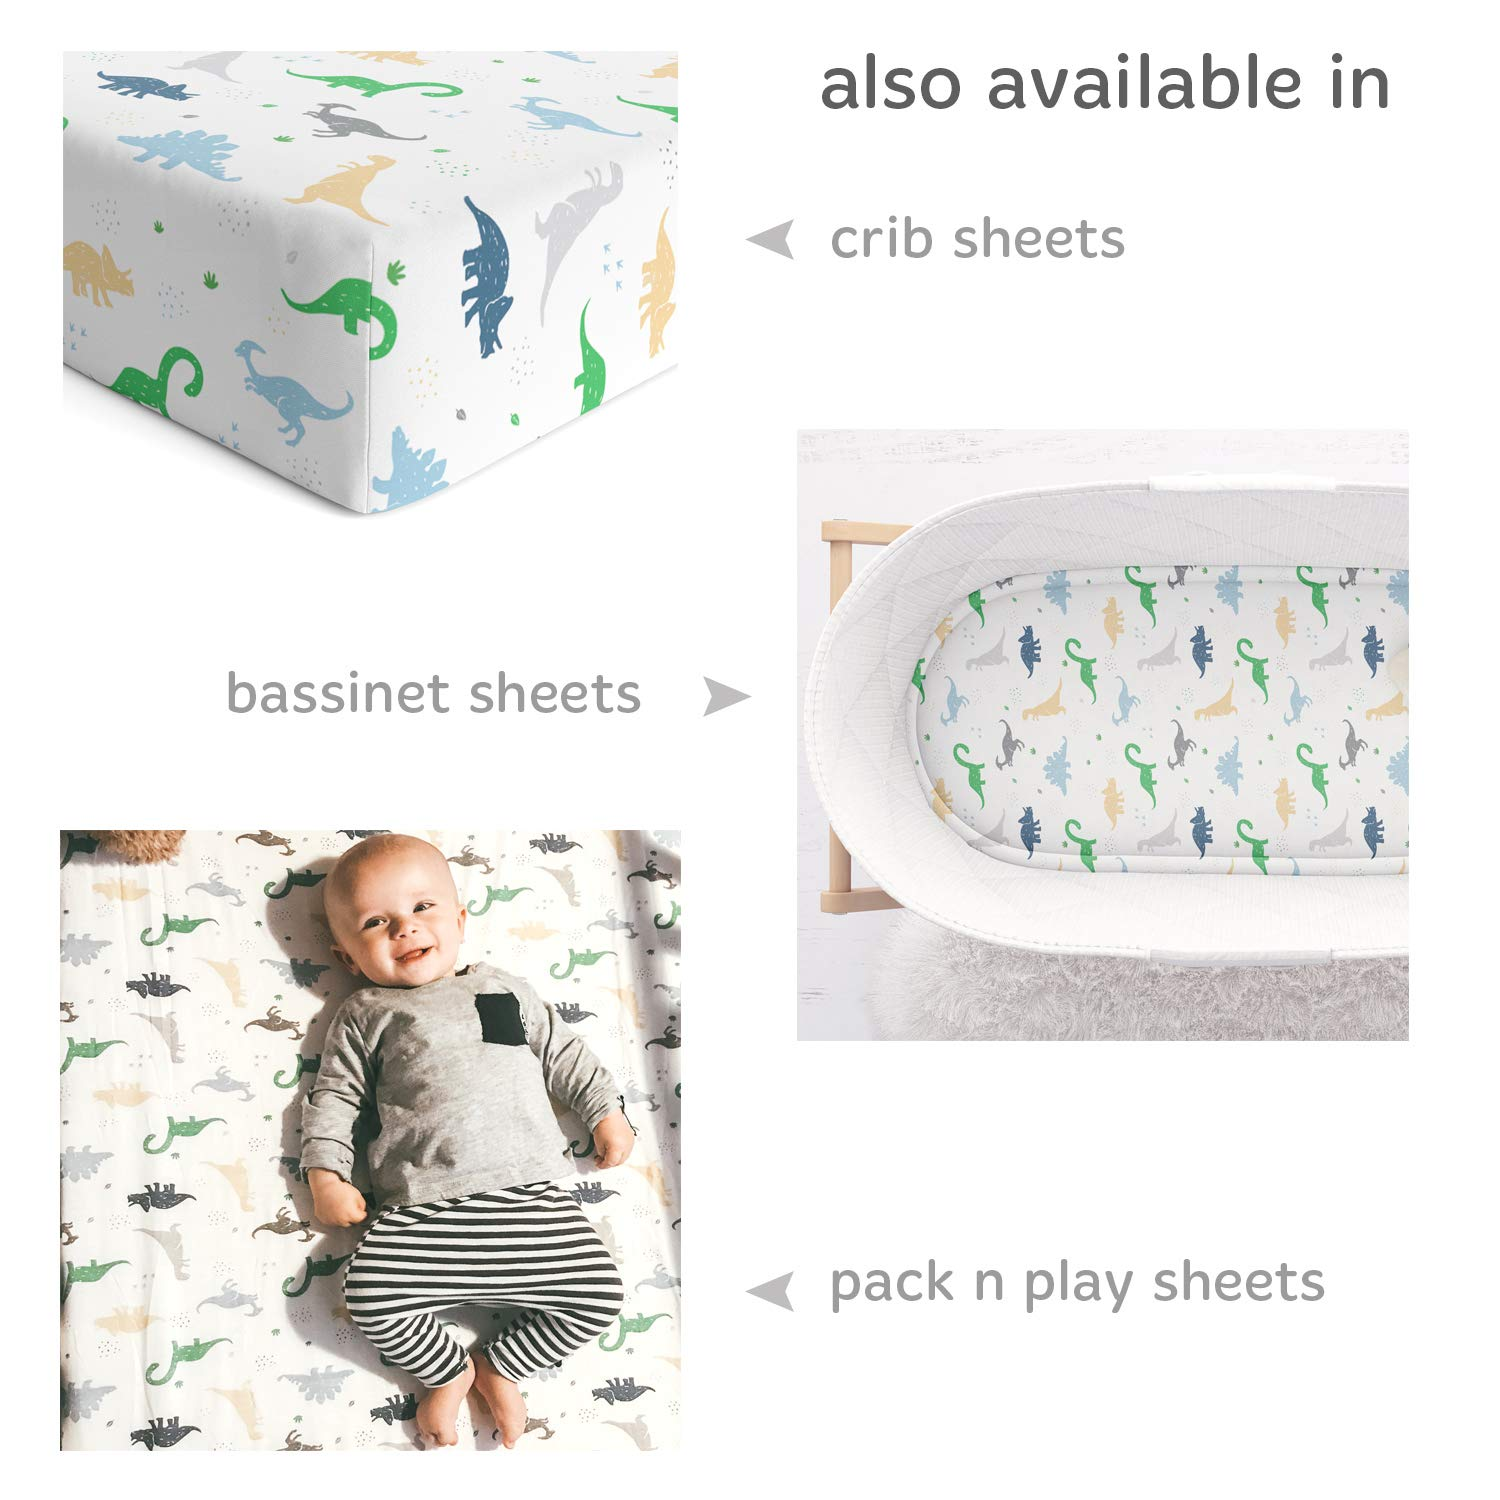 Fitted Sheets for Chicco Lullago Halo Bassinet Arms Reach Versatile and Other Oval Rectangle Basinette Natural Jersey Cotton Cuddly Cubs Dinosaur Bassinet Sheets Ultra Soft